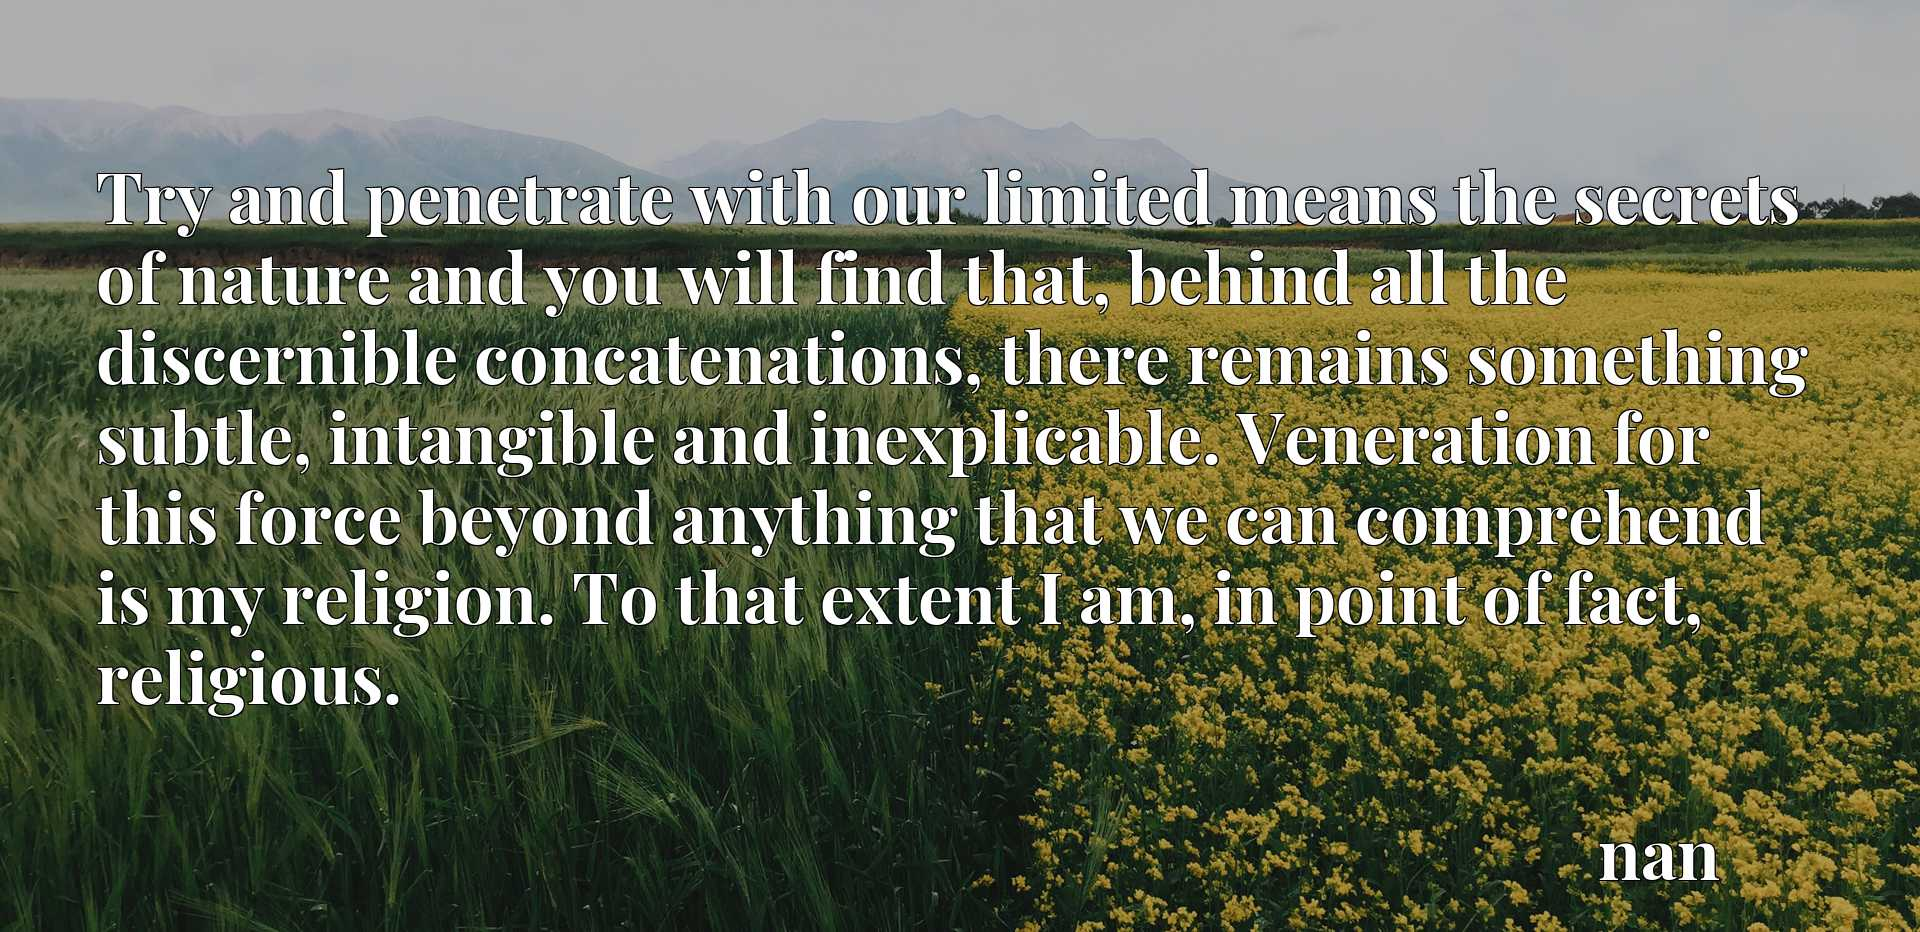 Try and penetrate with our limited means the secrets of nature and you will find that, behind all the discernible concatenations, there remains something subtle, intangible and inexplicable. Veneration for this force beyond anything that we can comprehend is my religion. To that extent I am, in point of fact, religious.